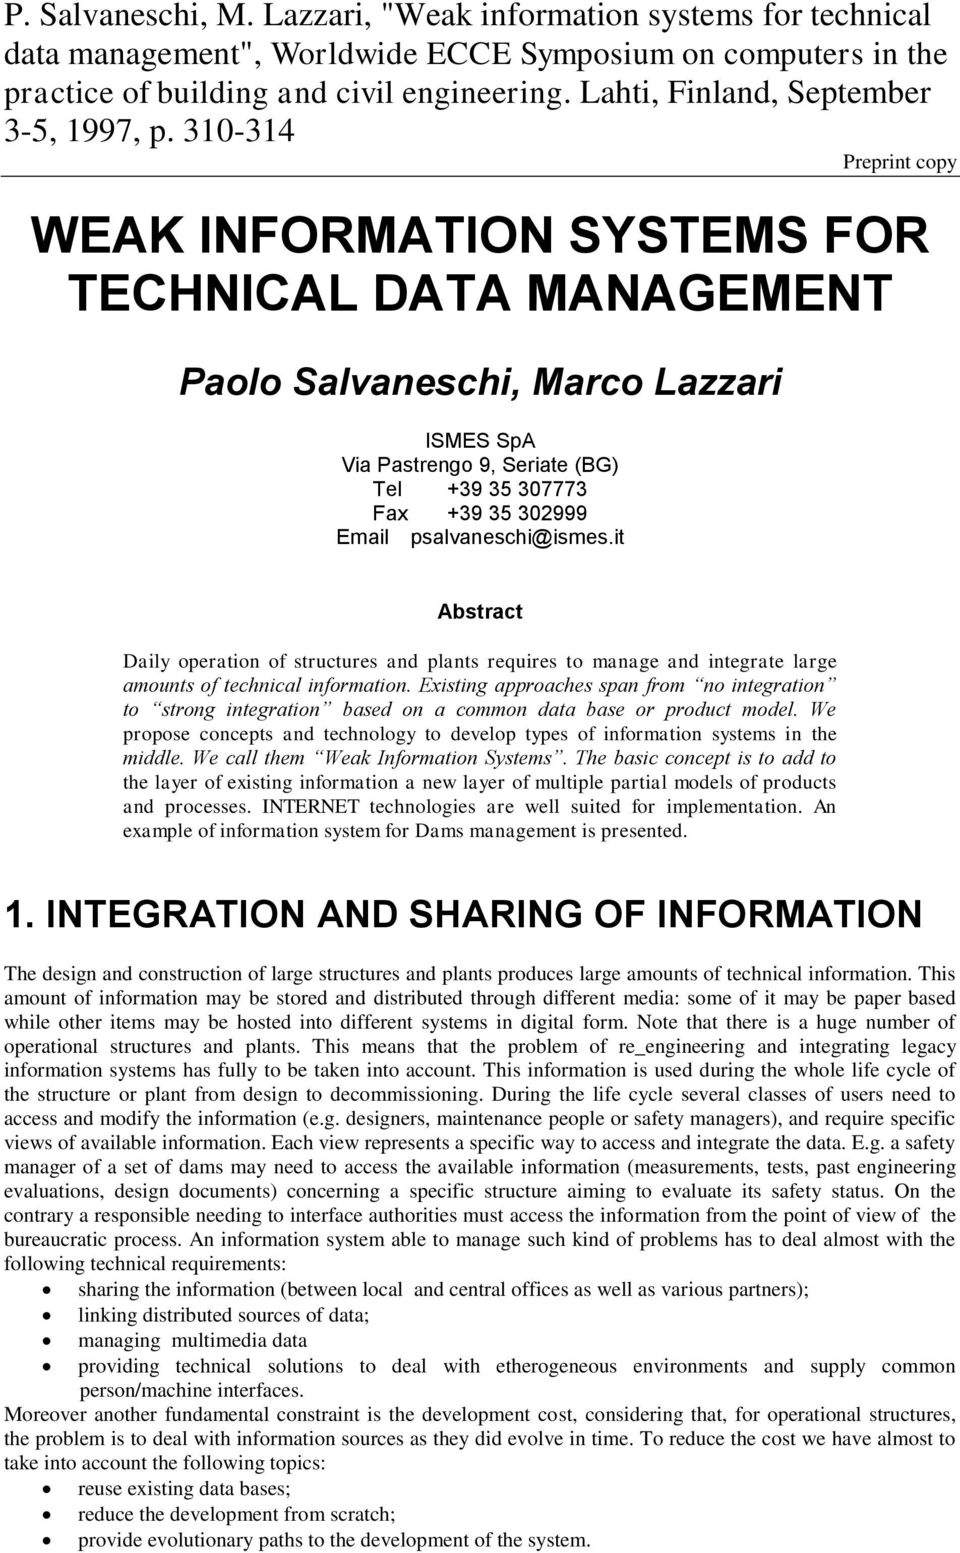 310-314 Preprint copy WEAK INFORMATION SYSTEMS FOR TECHNICAL DATA MANAGEMENT Paolo Salvaneschi, Marco Lazzari ISMES SpA Via Pastrengo 9, Seriate (BG) Tel +39 35 307773 Fax +39 35 302999 Email